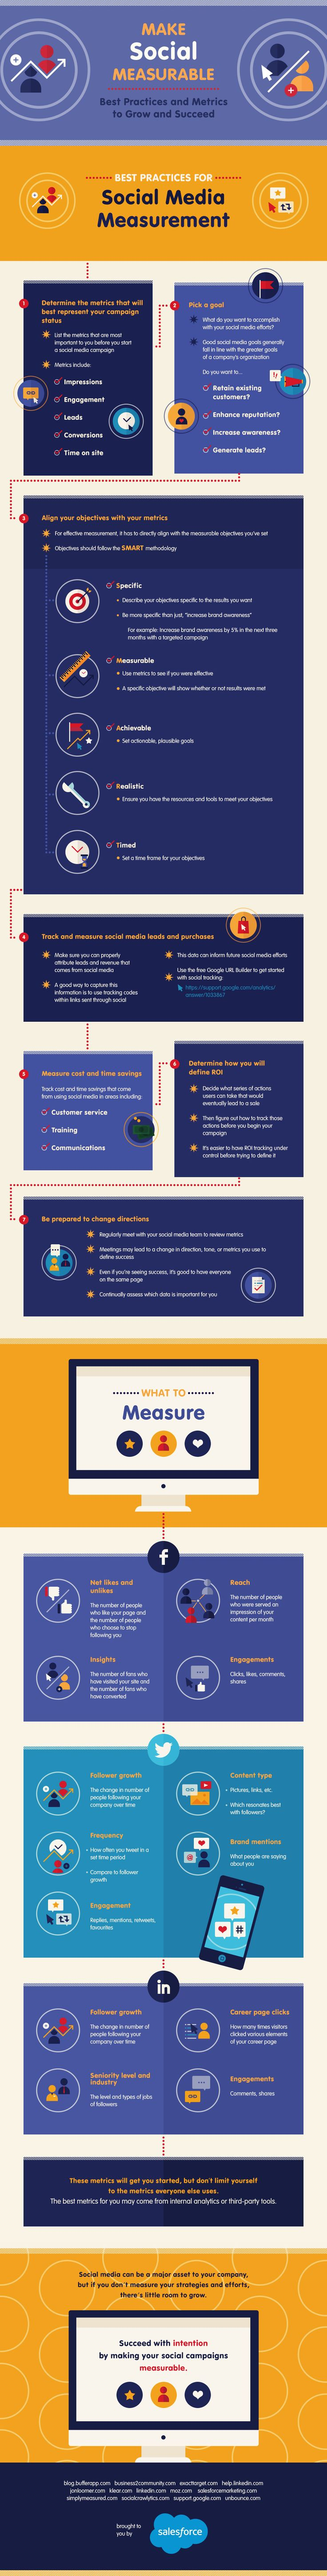 Make Your Social Media Marketing Project A Great Success By Taking The Right Measures - #infographic